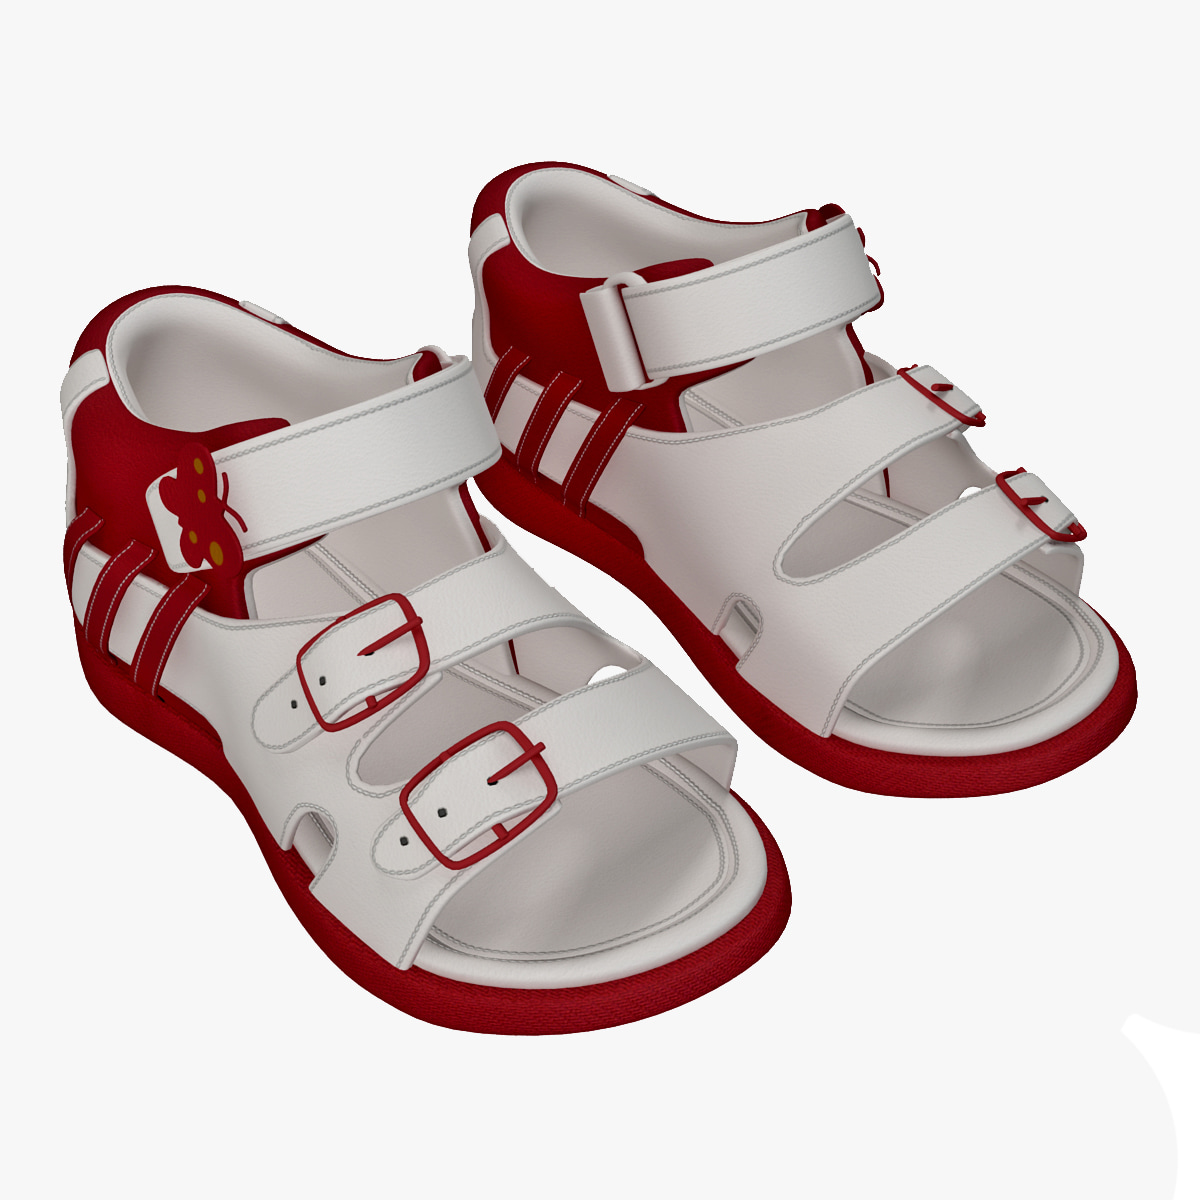 Children_Sandal_V4_00.jpg